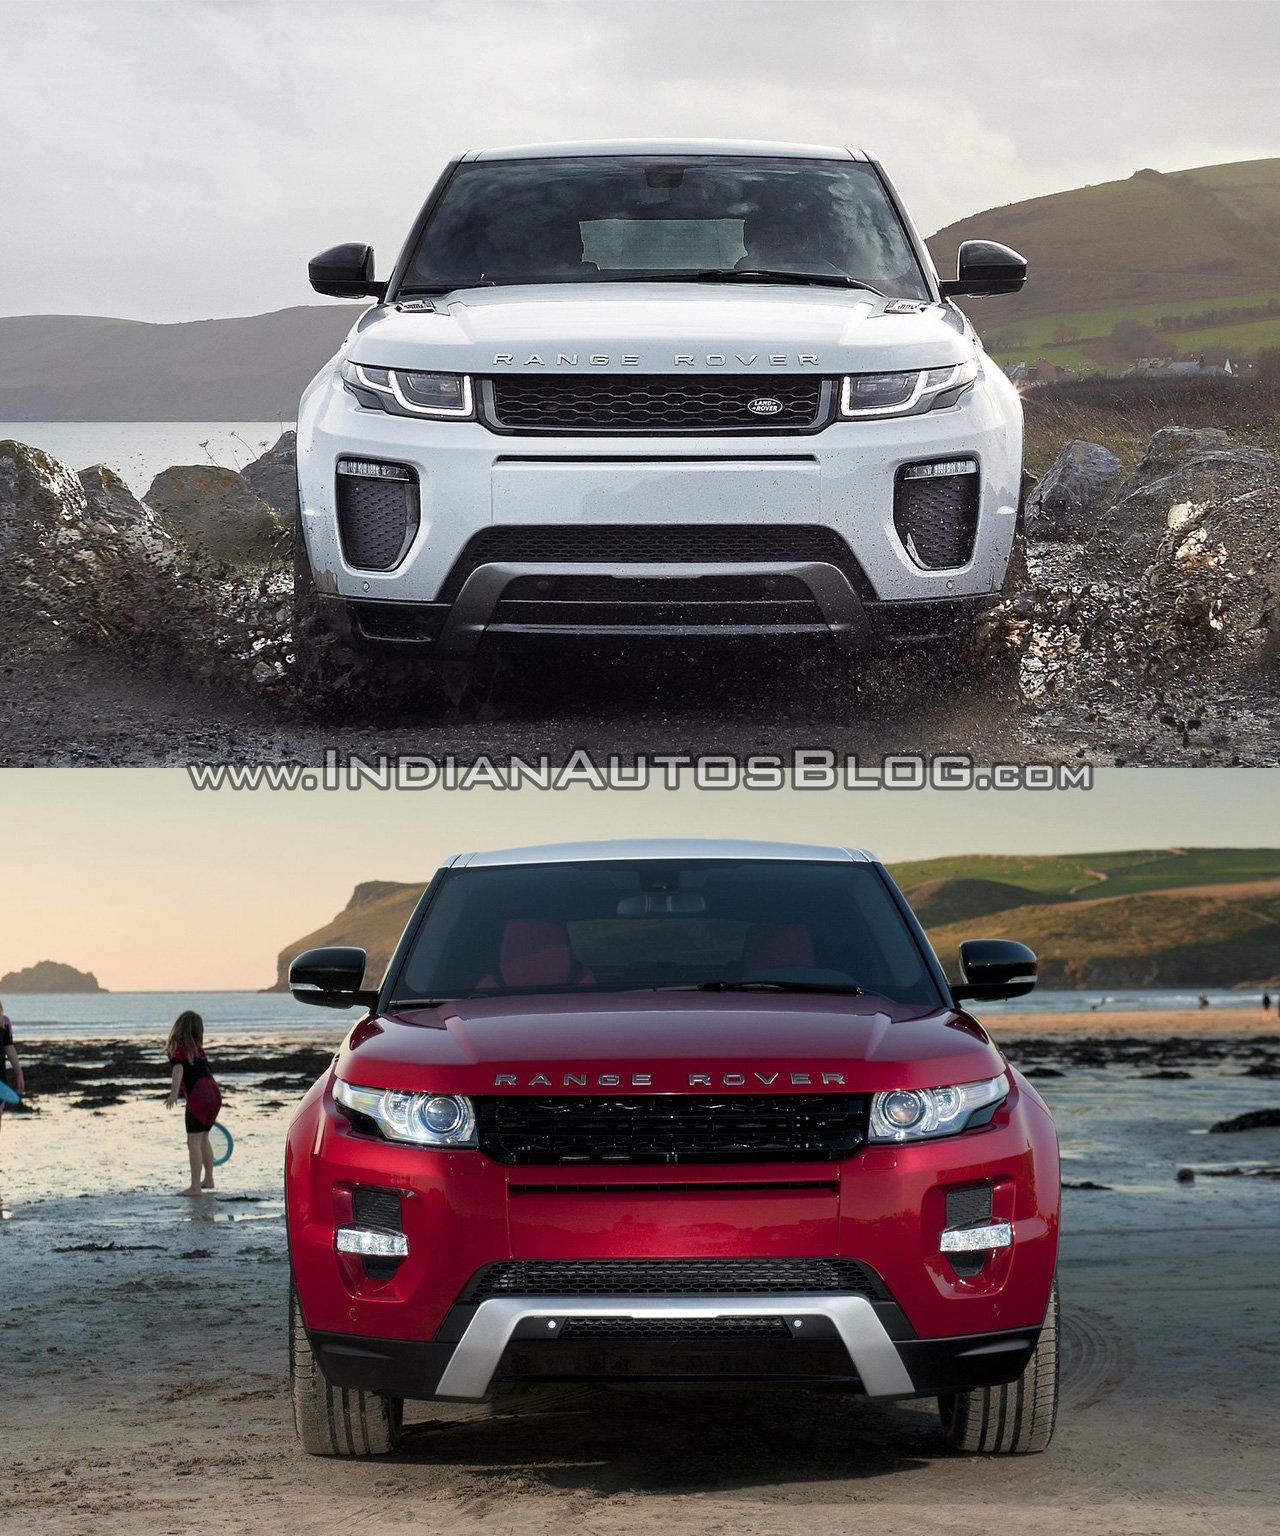 2016 range rover evoque facelift vs 2015 evoque old vs new. Black Bedroom Furniture Sets. Home Design Ideas